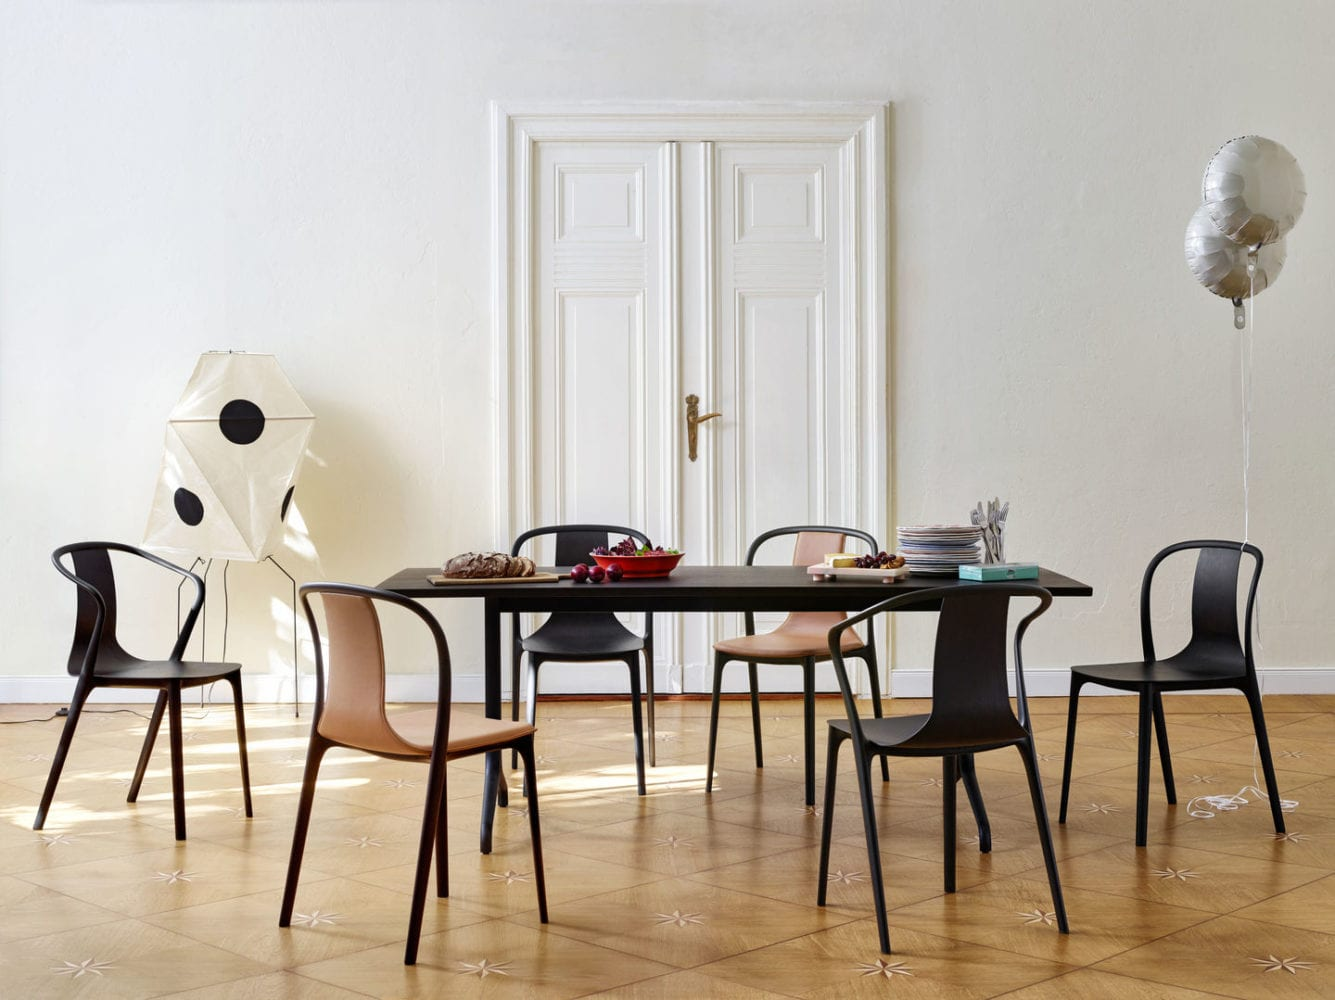 Vitra Dining Chairs and Table